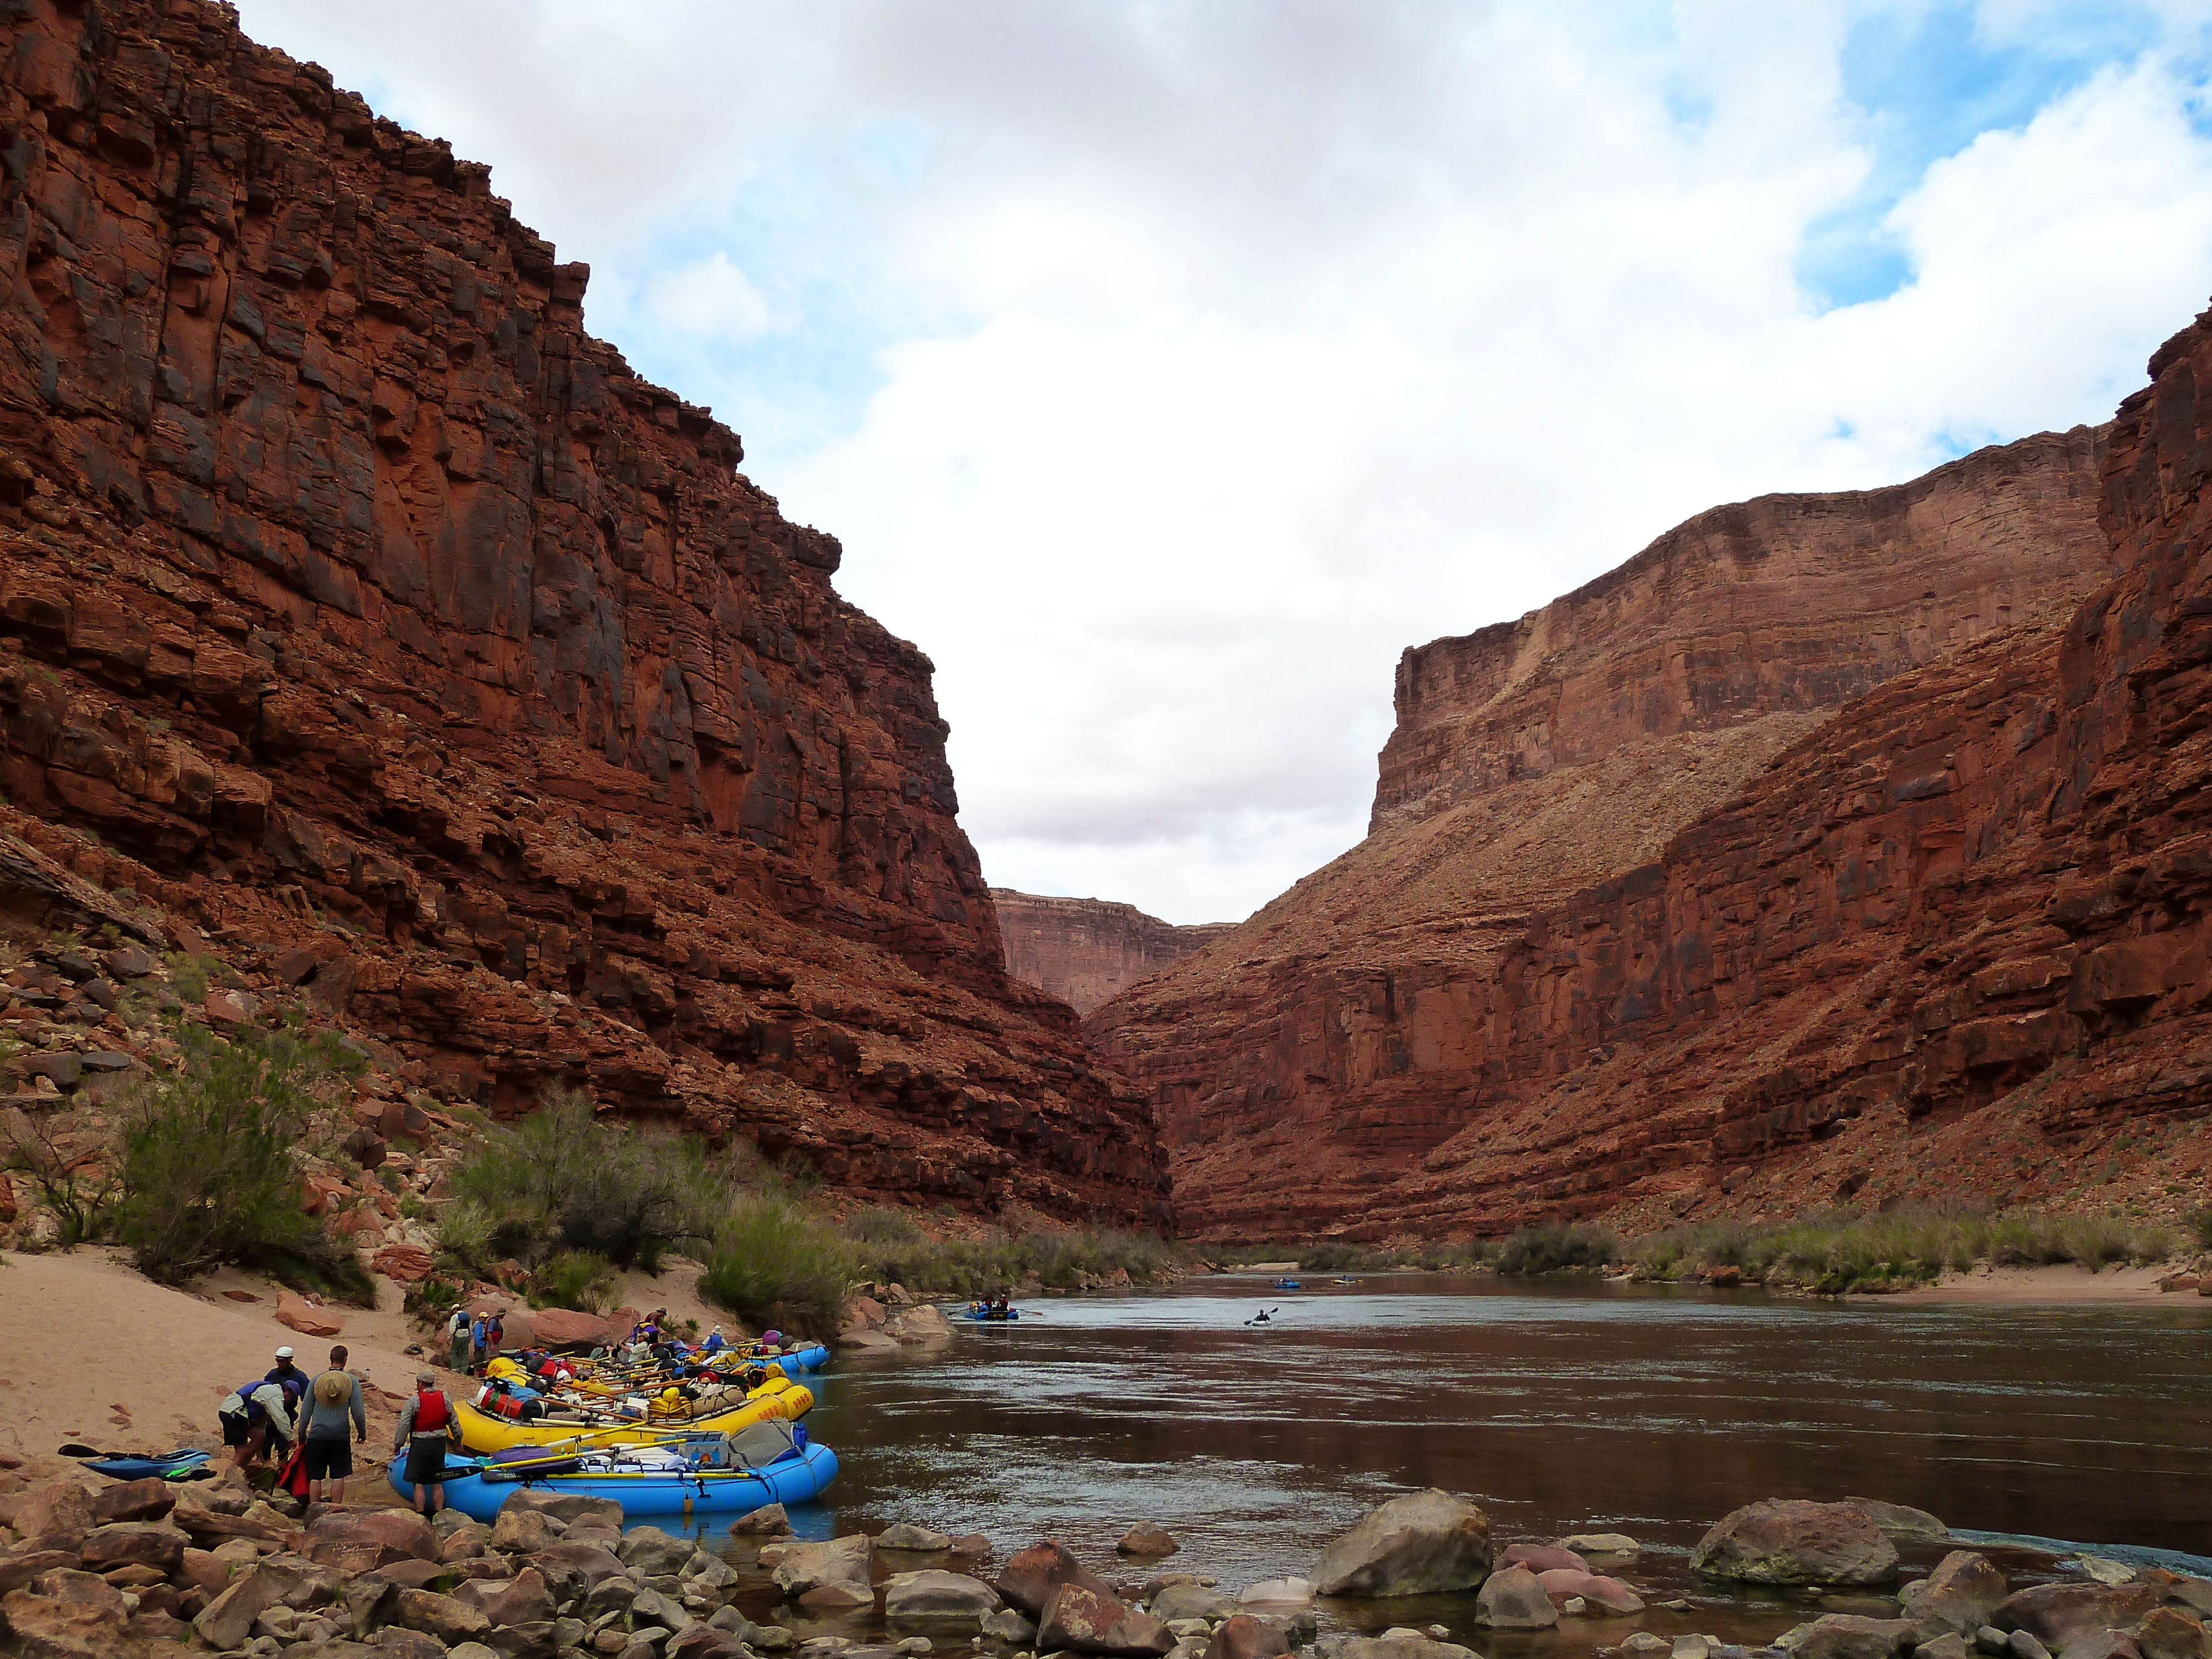 Rafting the Grand Canyon, April 2013, Day 2